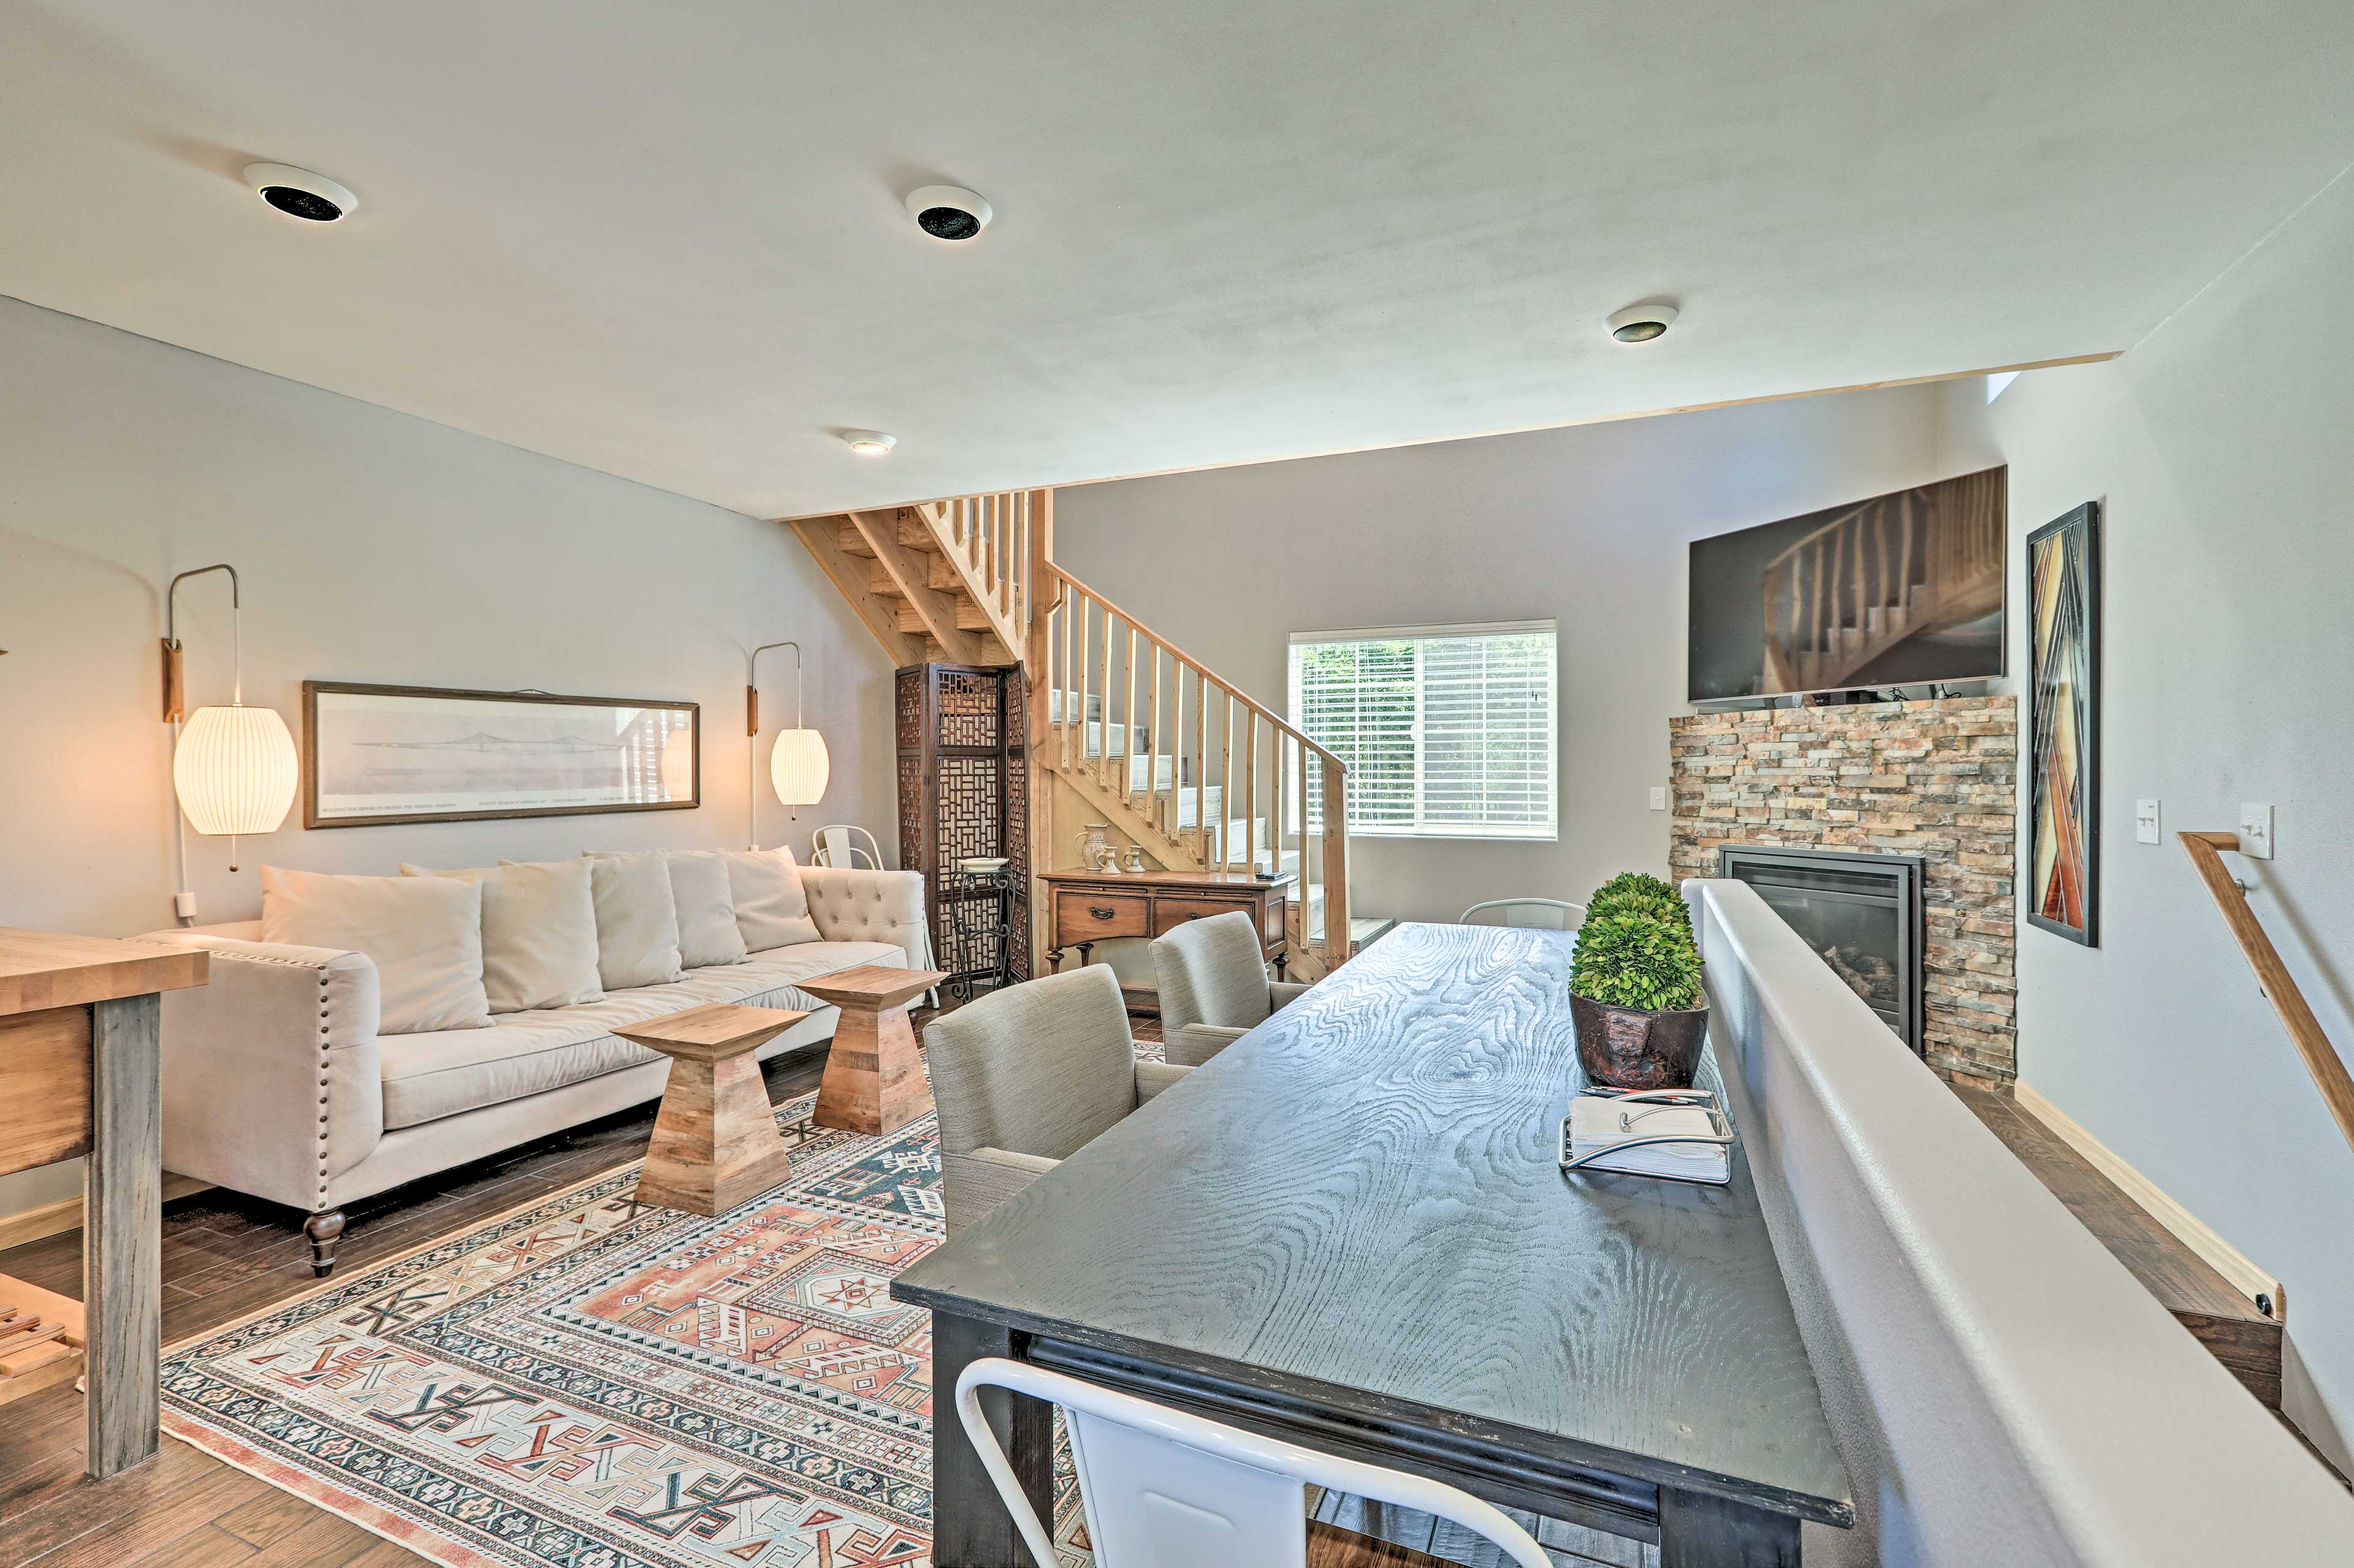 Living Room | Smart TV | Gas Fireplace | Air Conditioning